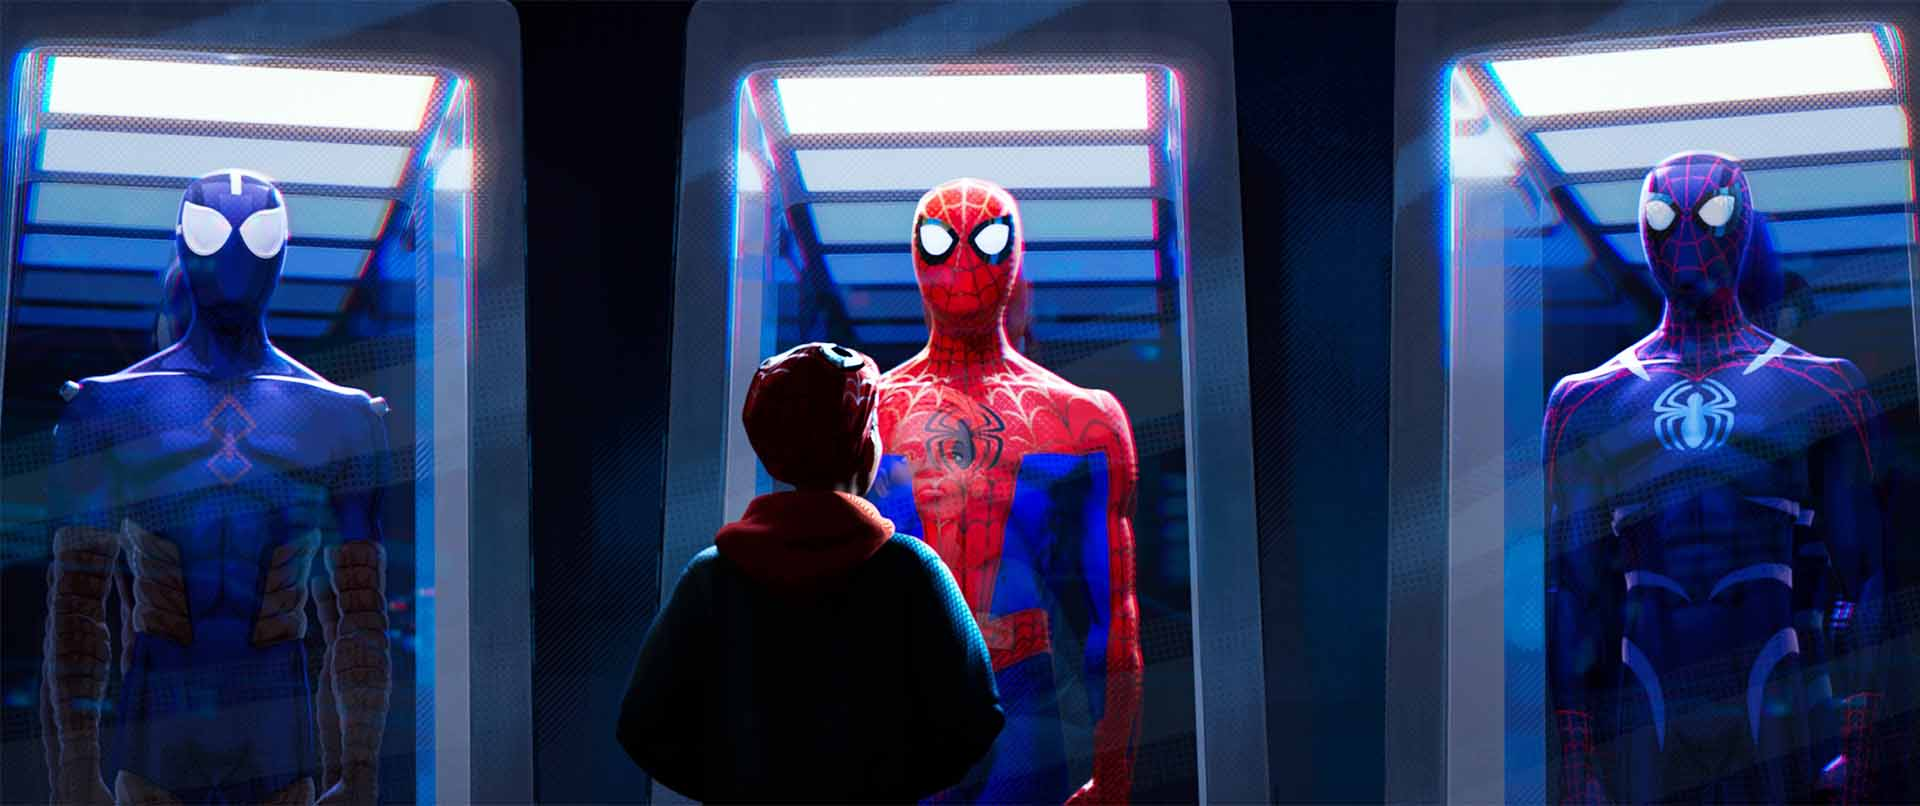 'Spider-Man: Into the Spider-Verse' tendría secuela y spin-off